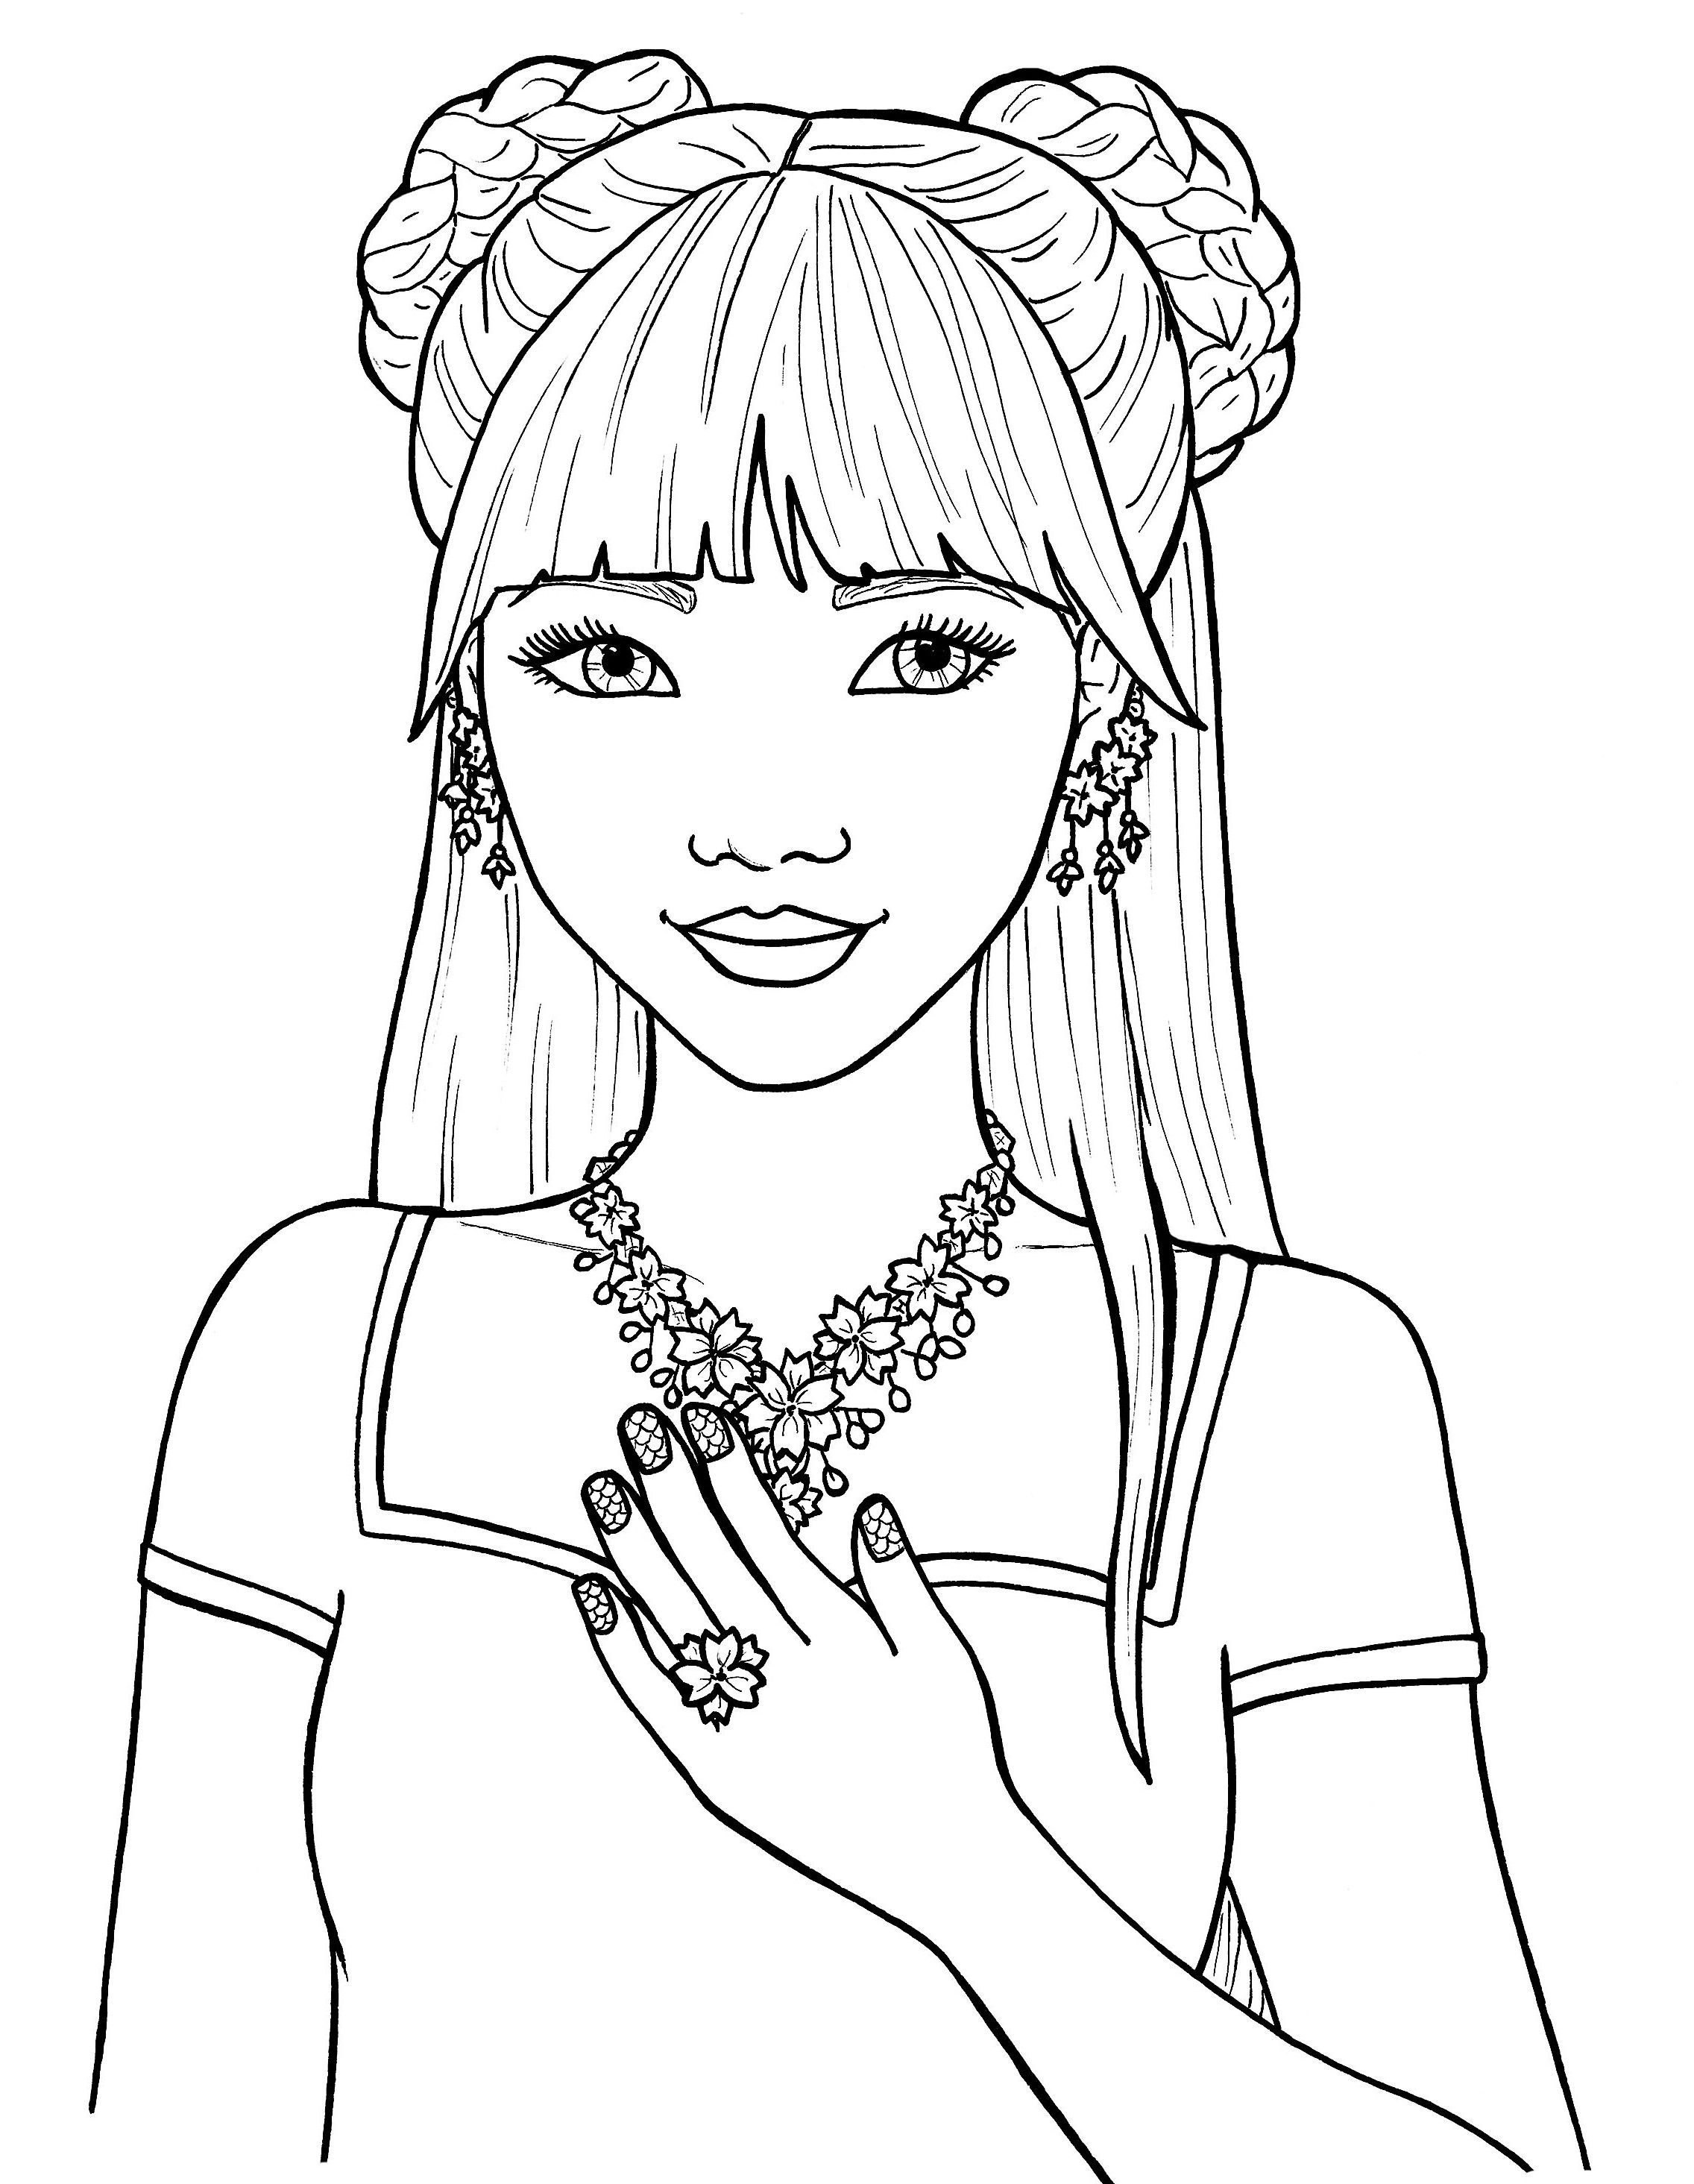 Free Printable Coloring Pages Girls With Images People